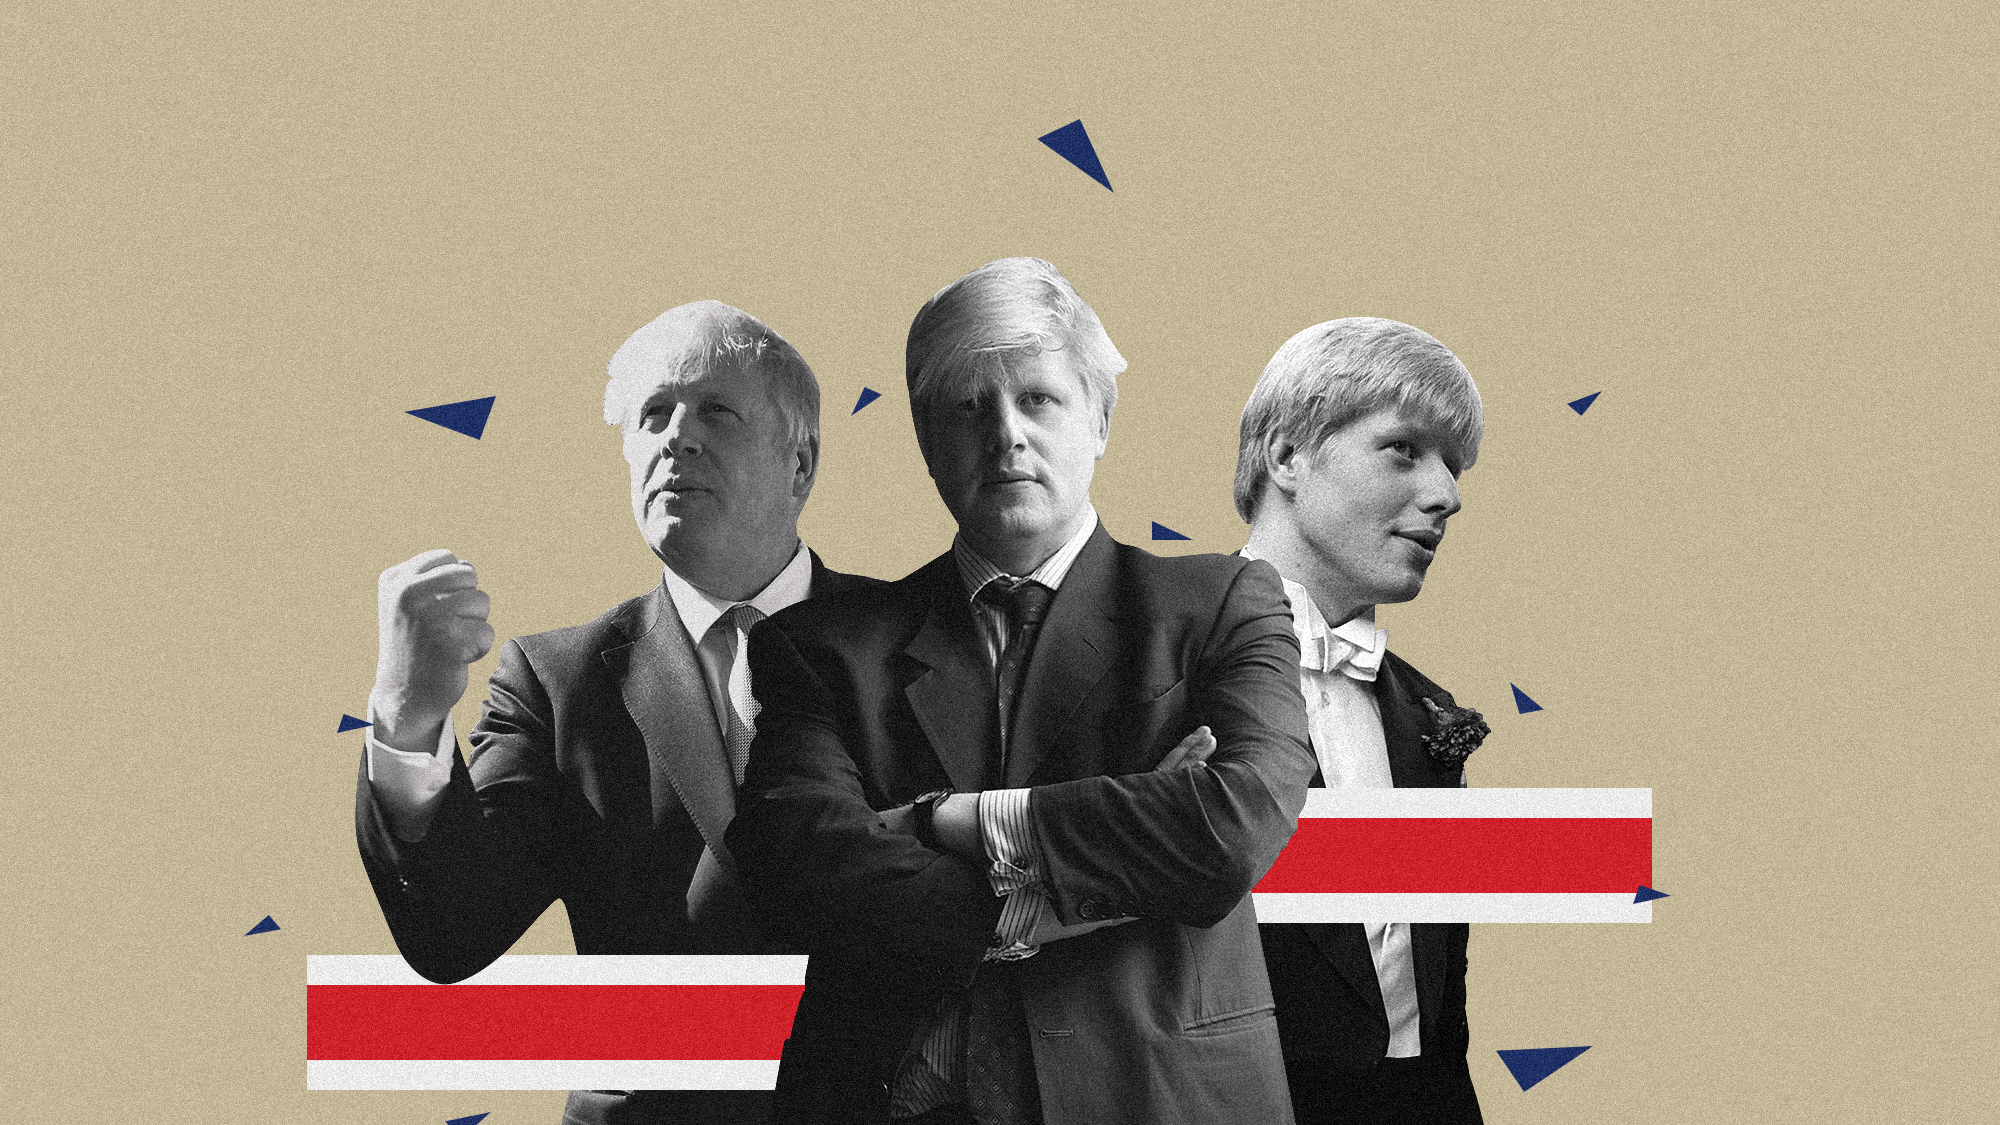 Is Boris Johnson Ready to be Britain's Prime Minister? - The